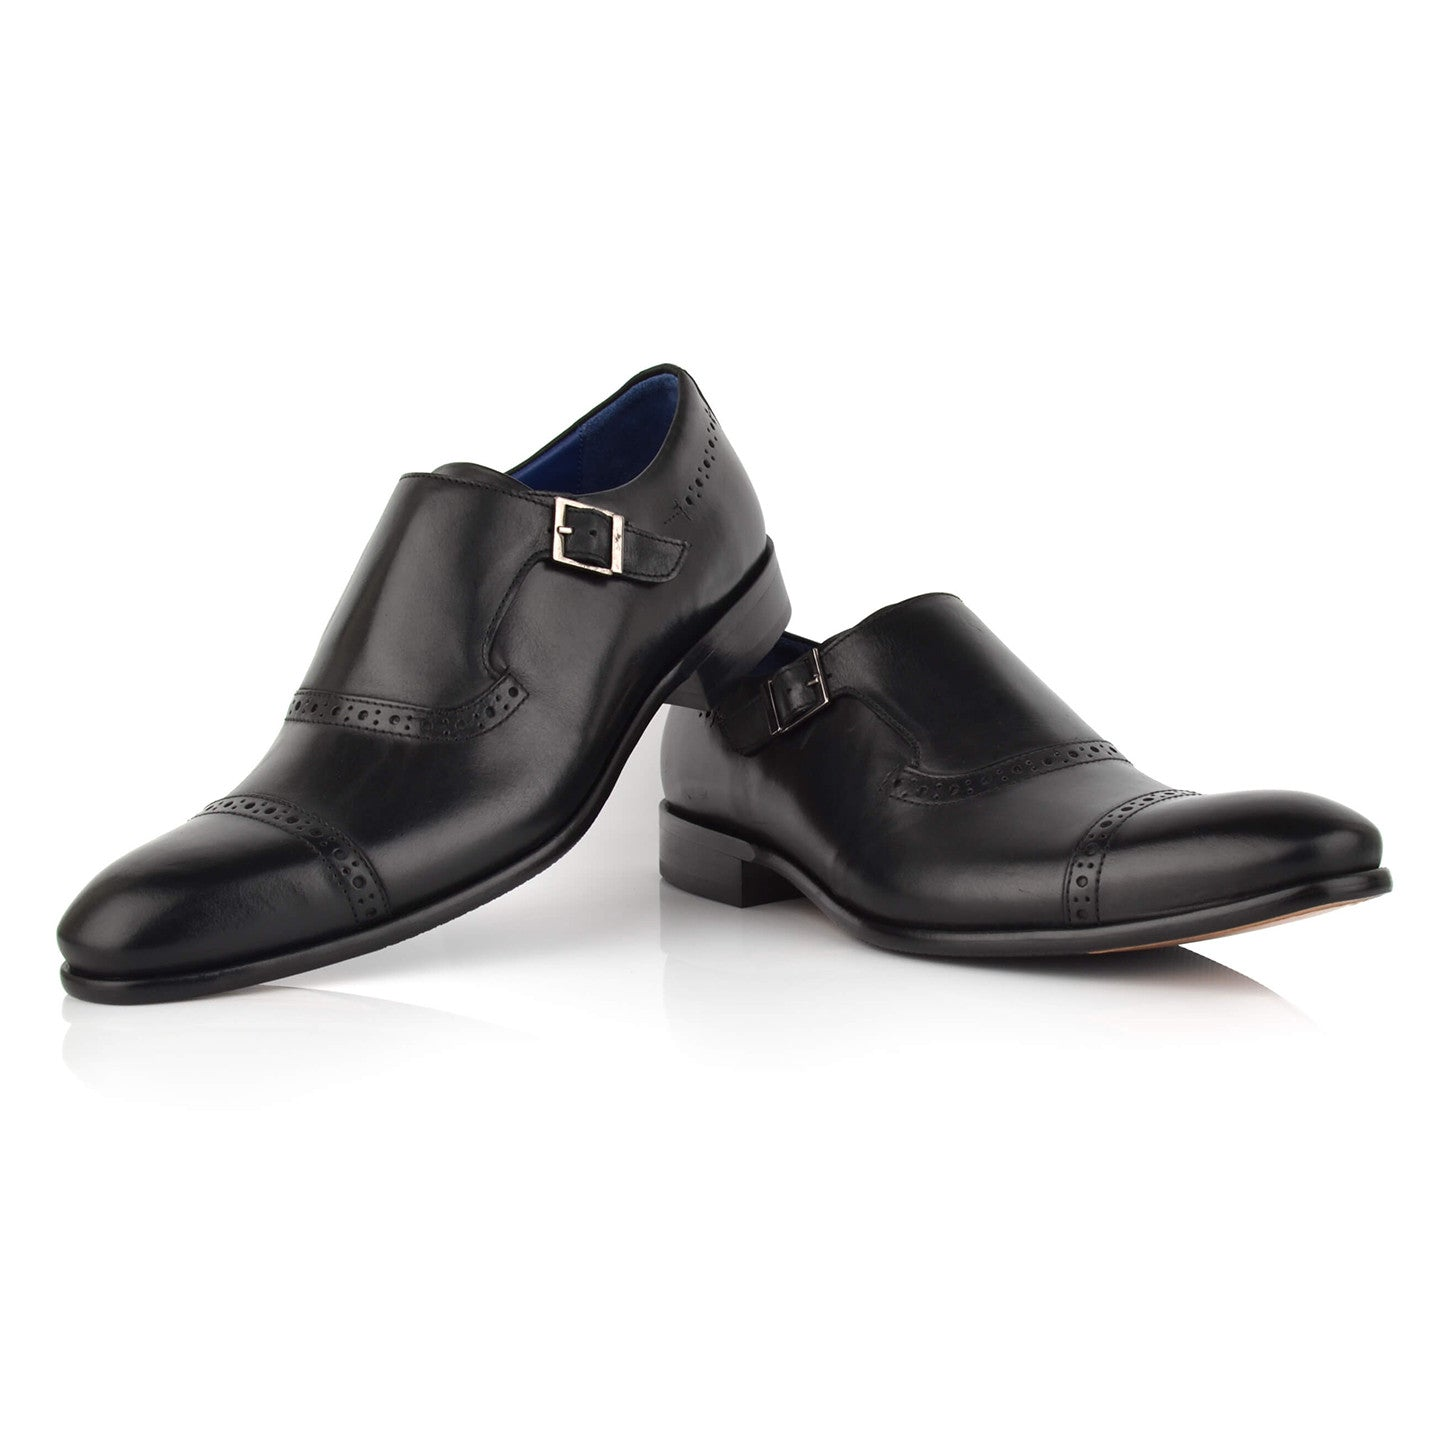 LM410 - Language Paco Men's Formal Black Monk Shoes